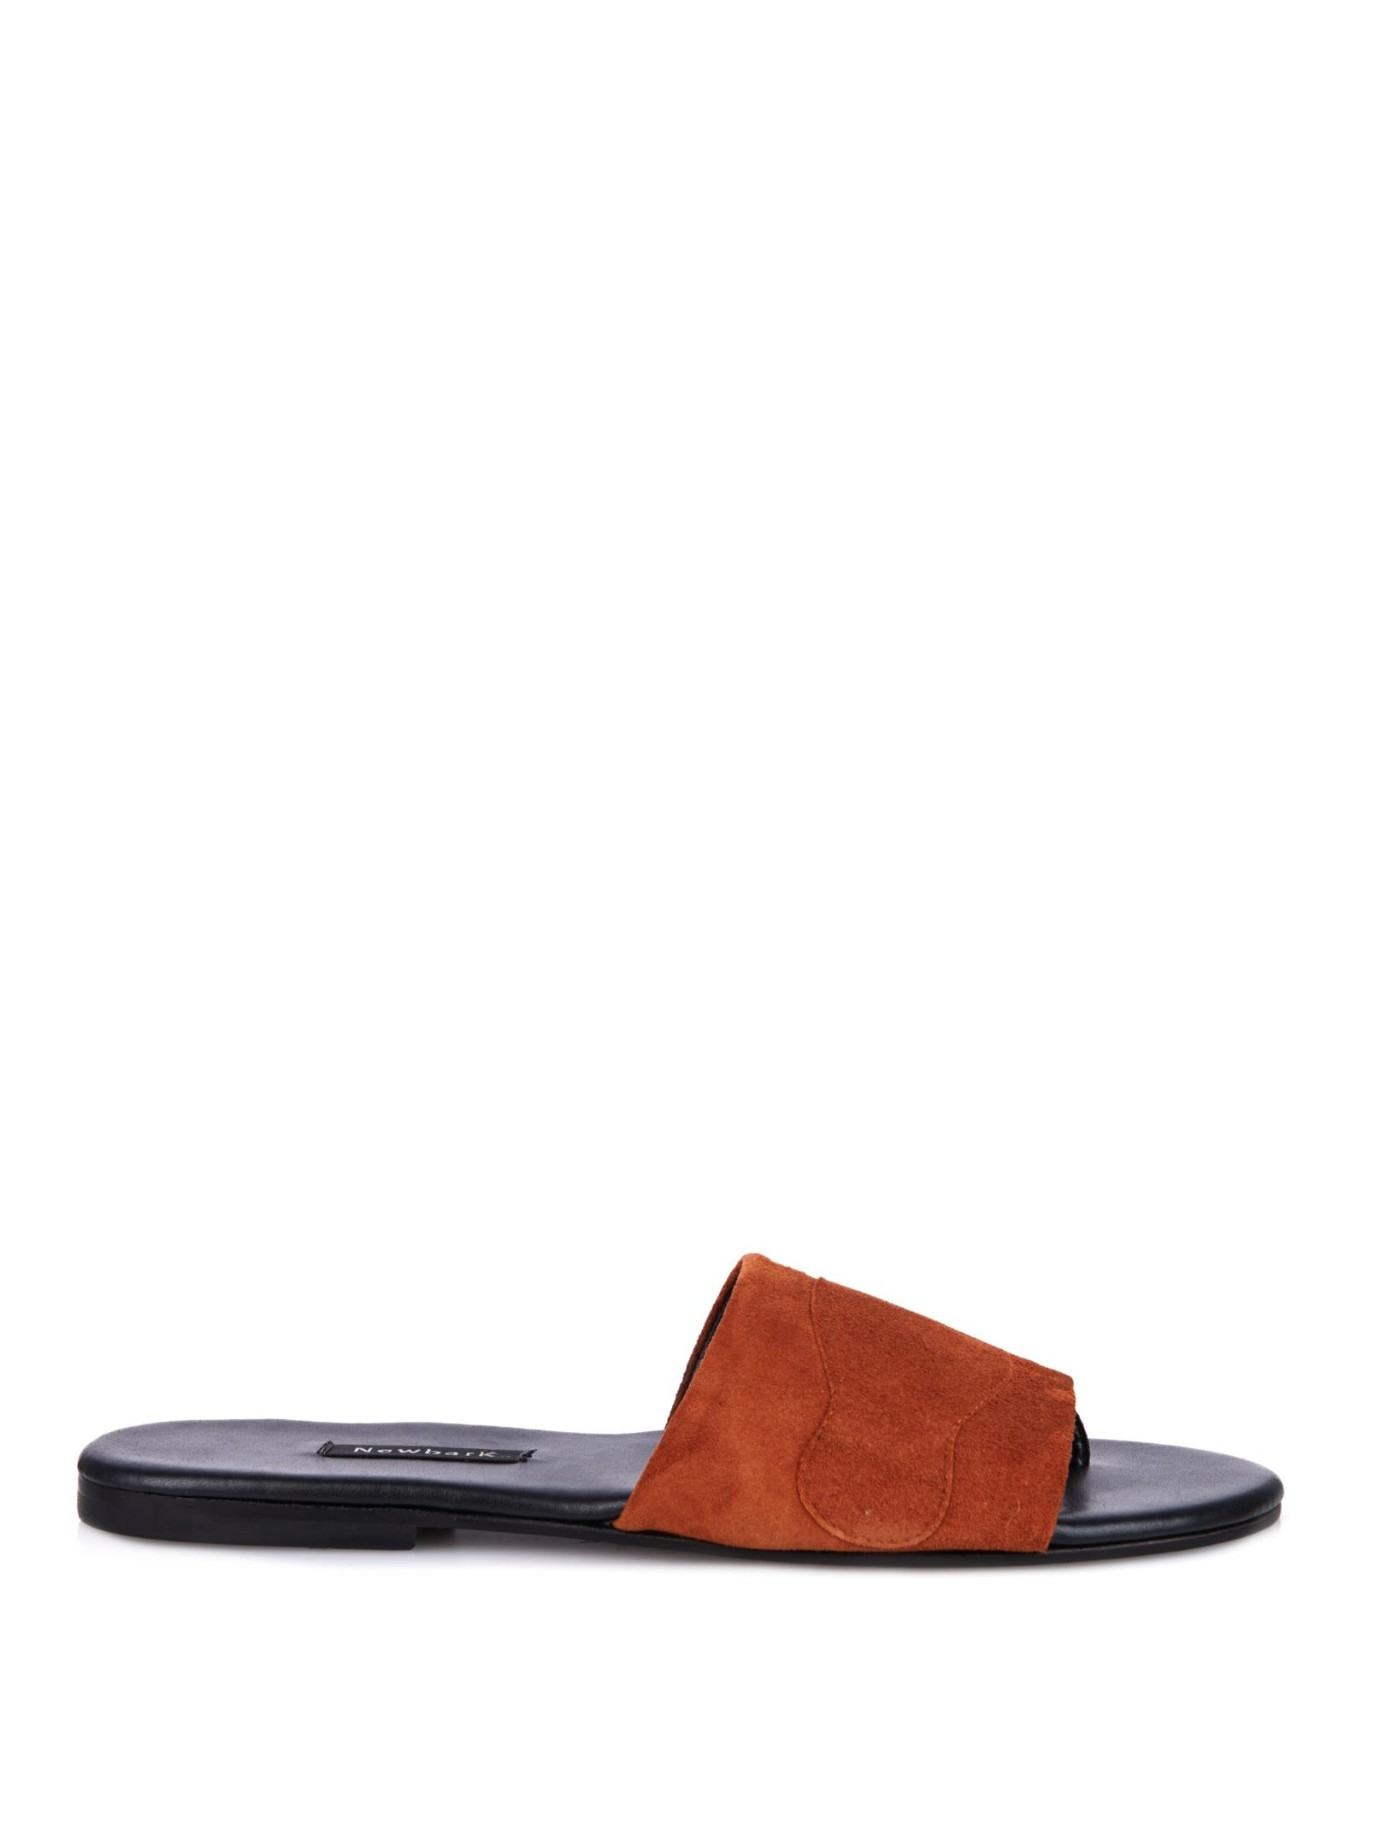 Newbark Roma Ii Suede Sandals in Brown